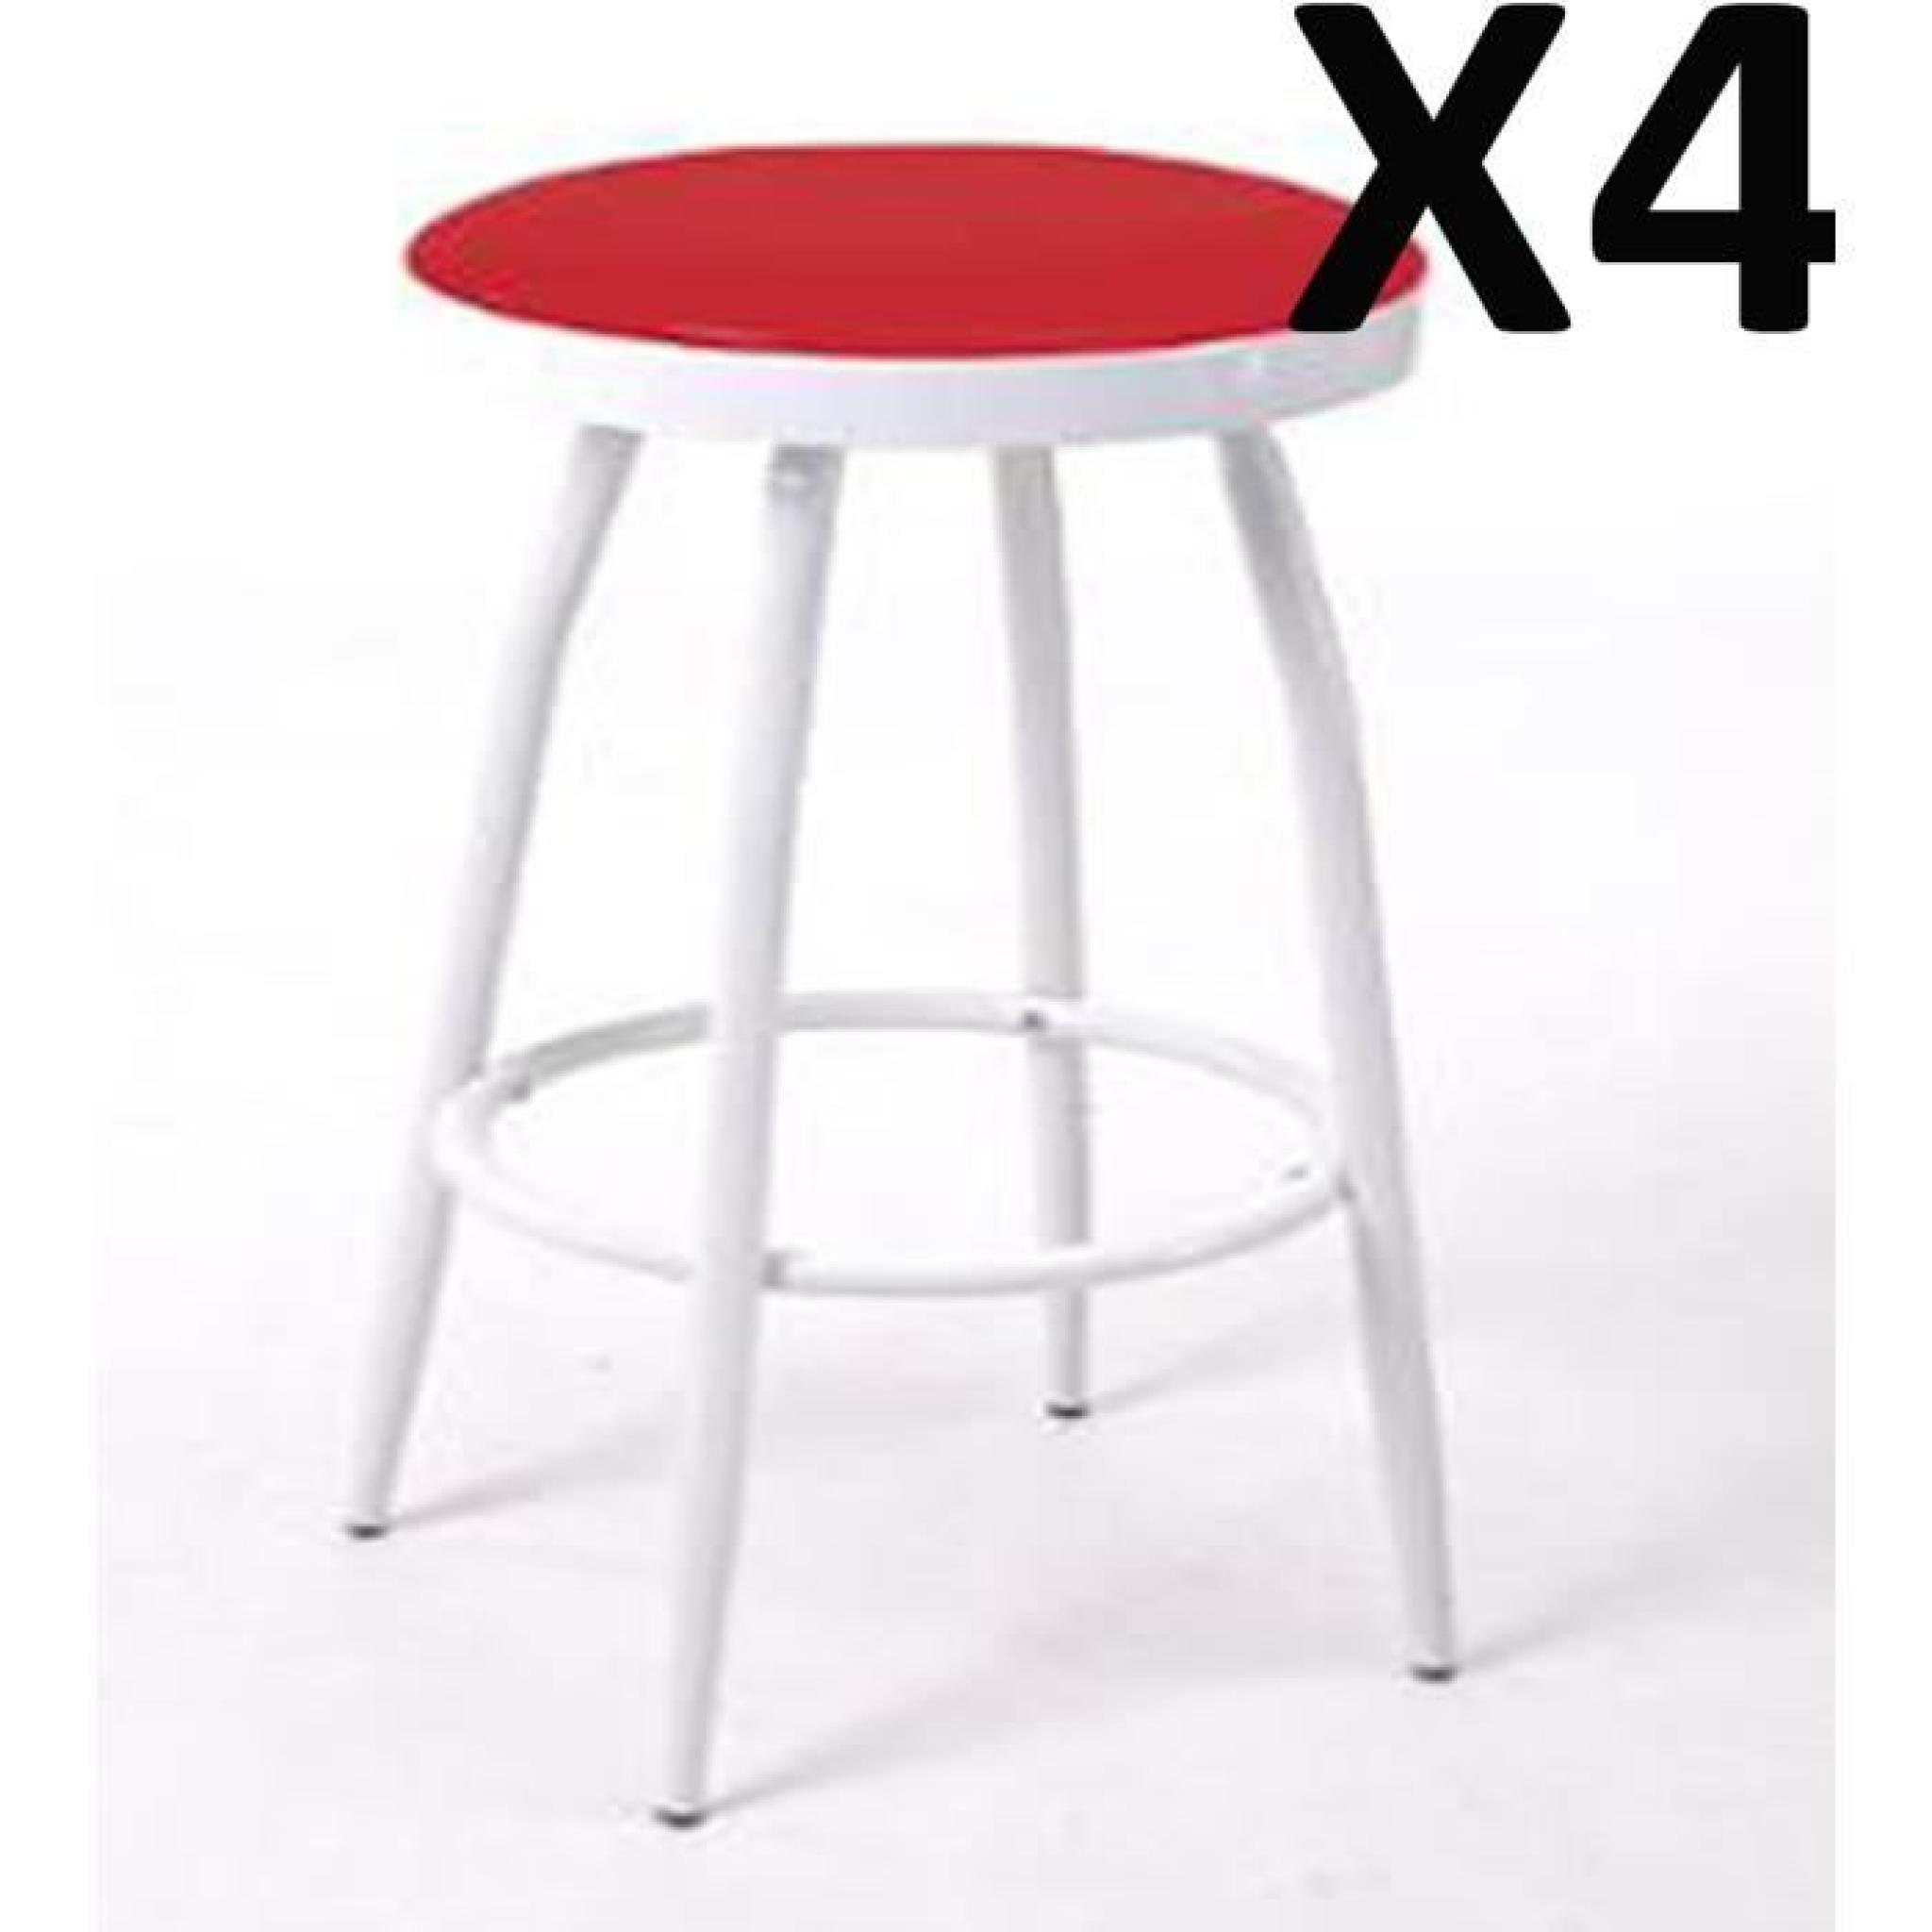 lot de 4 tabourets de bar rouge h 78 x d 36 cm achat vente tabouret de bar pas cher couleur. Black Bedroom Furniture Sets. Home Design Ideas